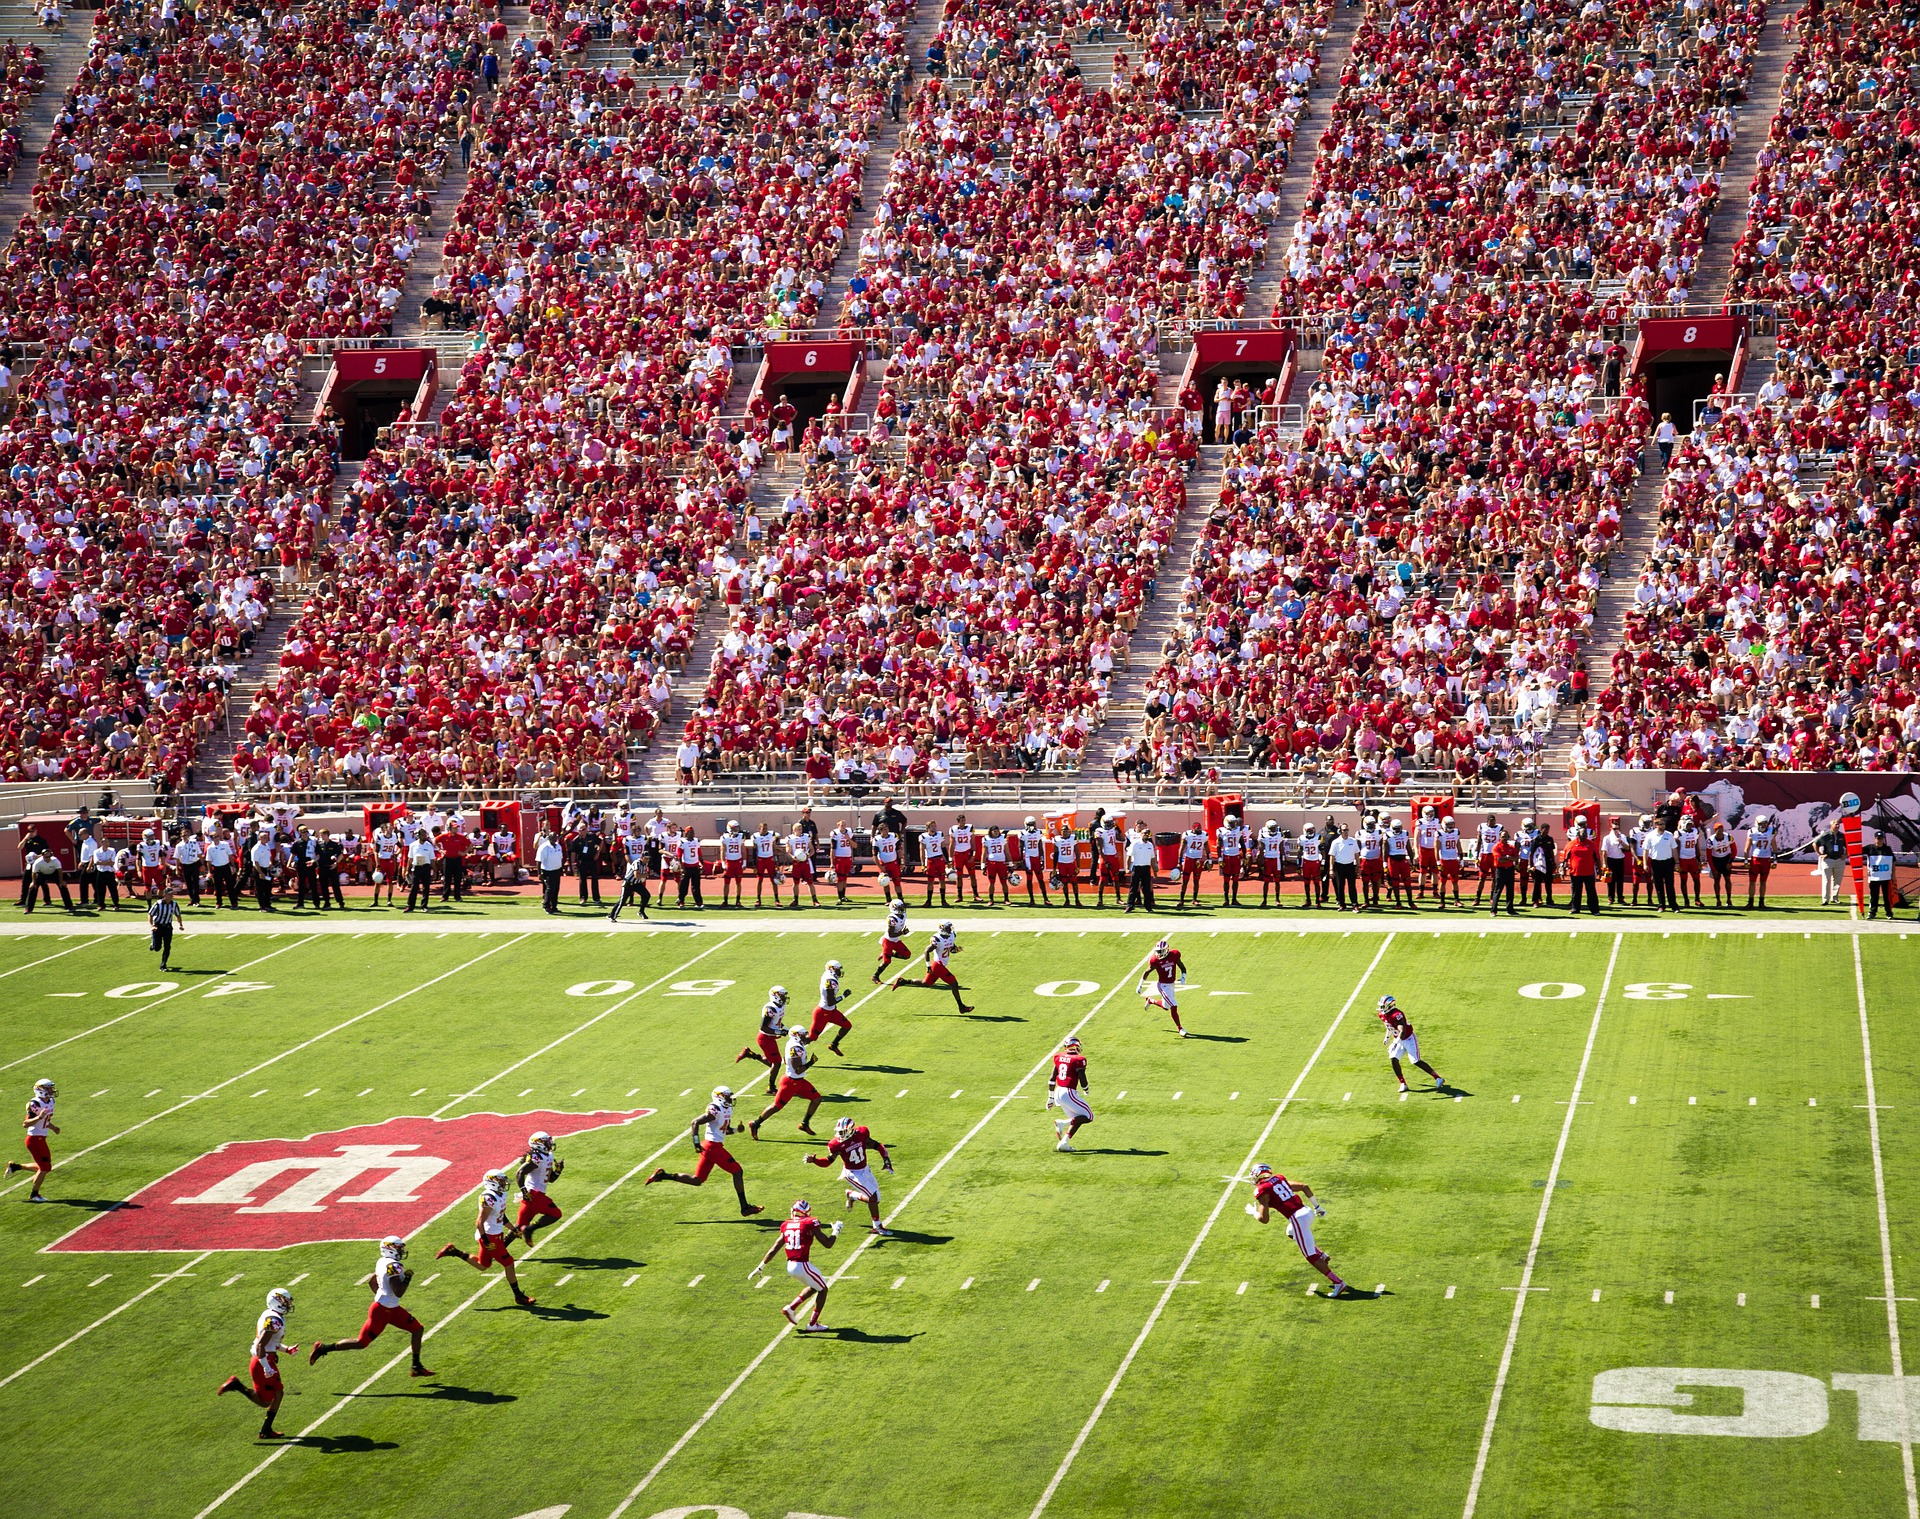 Indiana University Bloomington football team on field during game